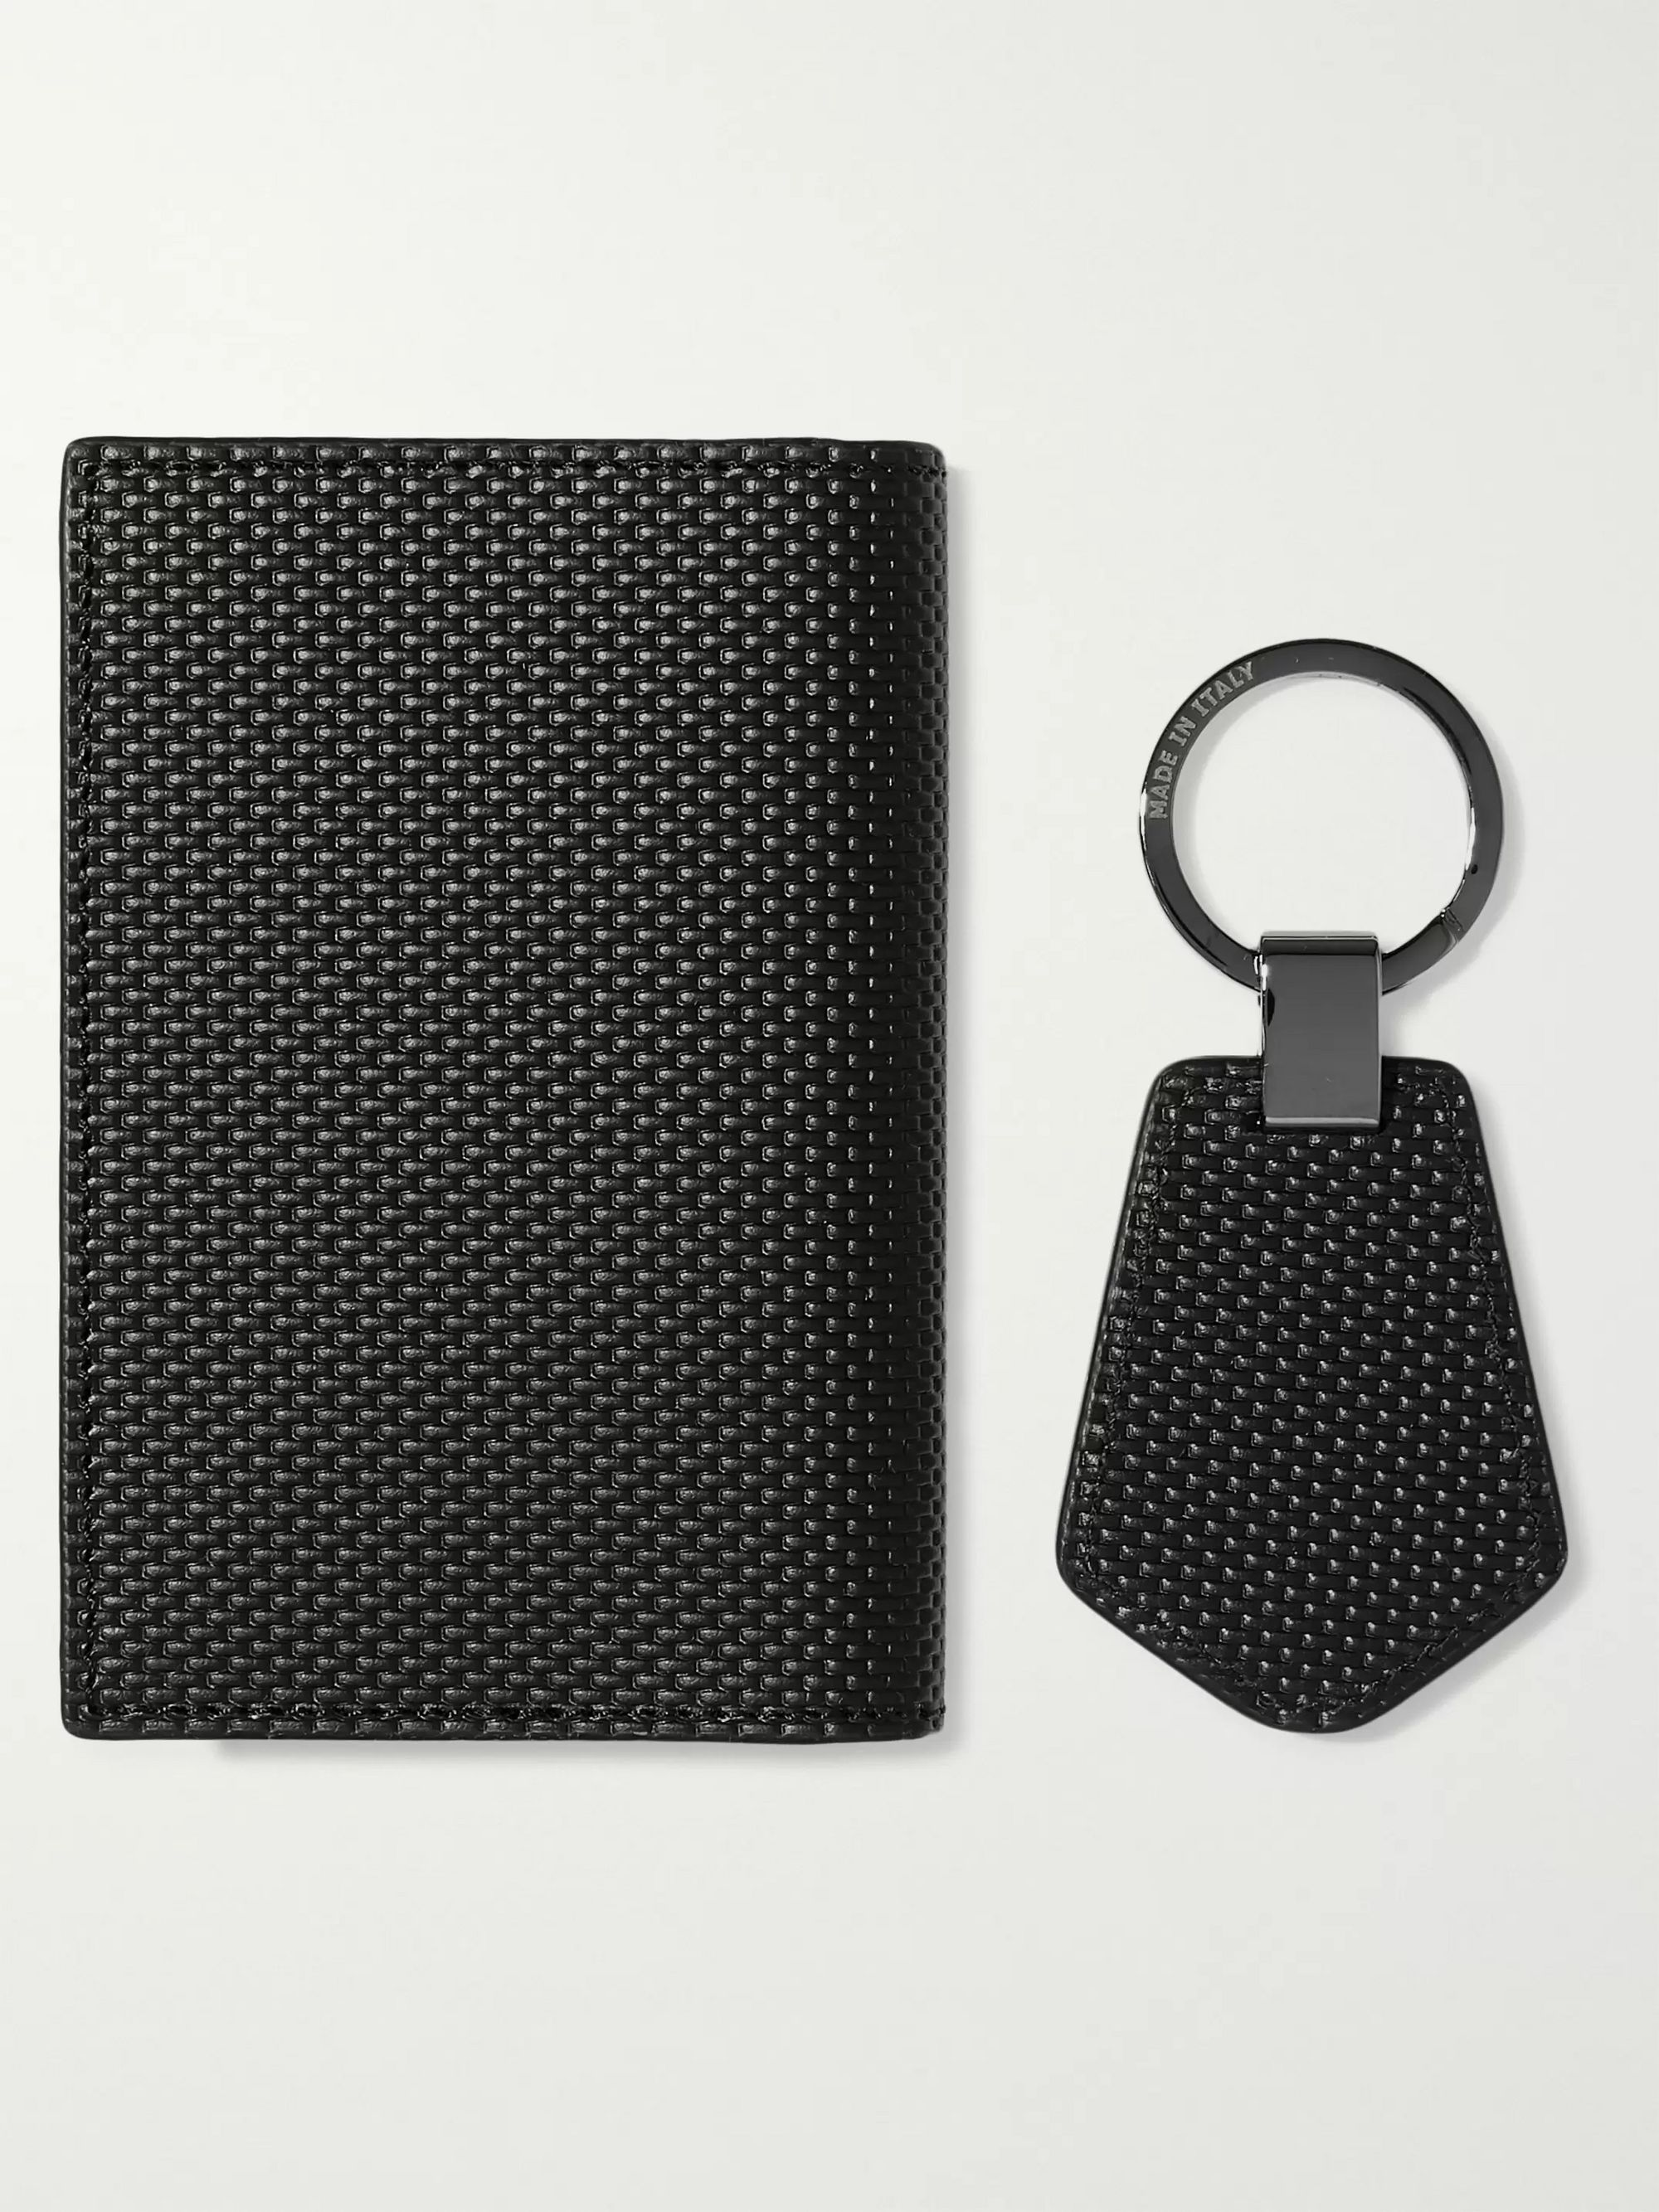 Montblanc Woven Leather Business Cardholder and Key Fob Gift Set